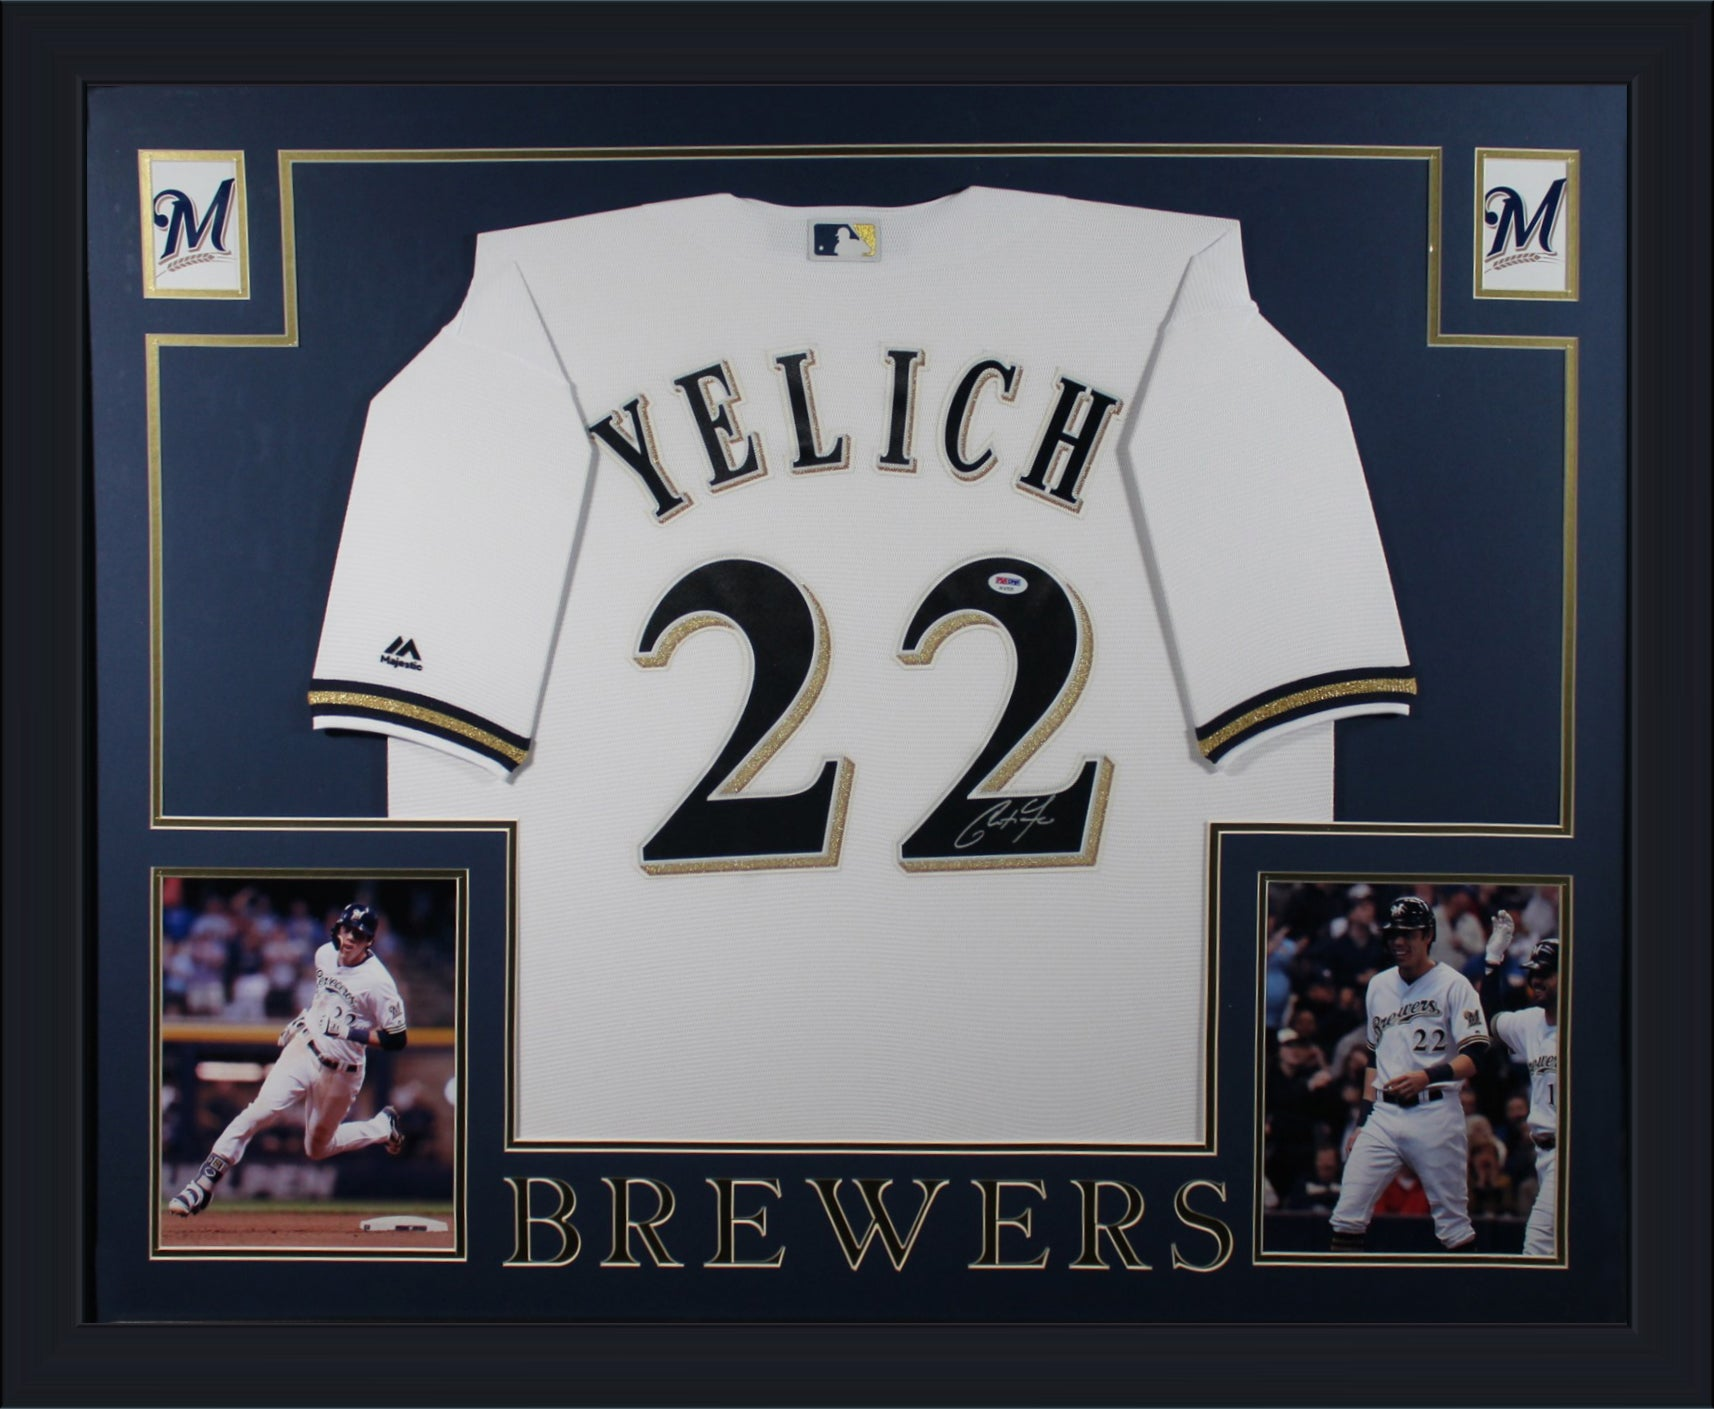 Christian Yelich Autographed Milwaukee Brewers Signed Baseball Framed Jersey PSA DNA COA-Powers Sports Memorabilia